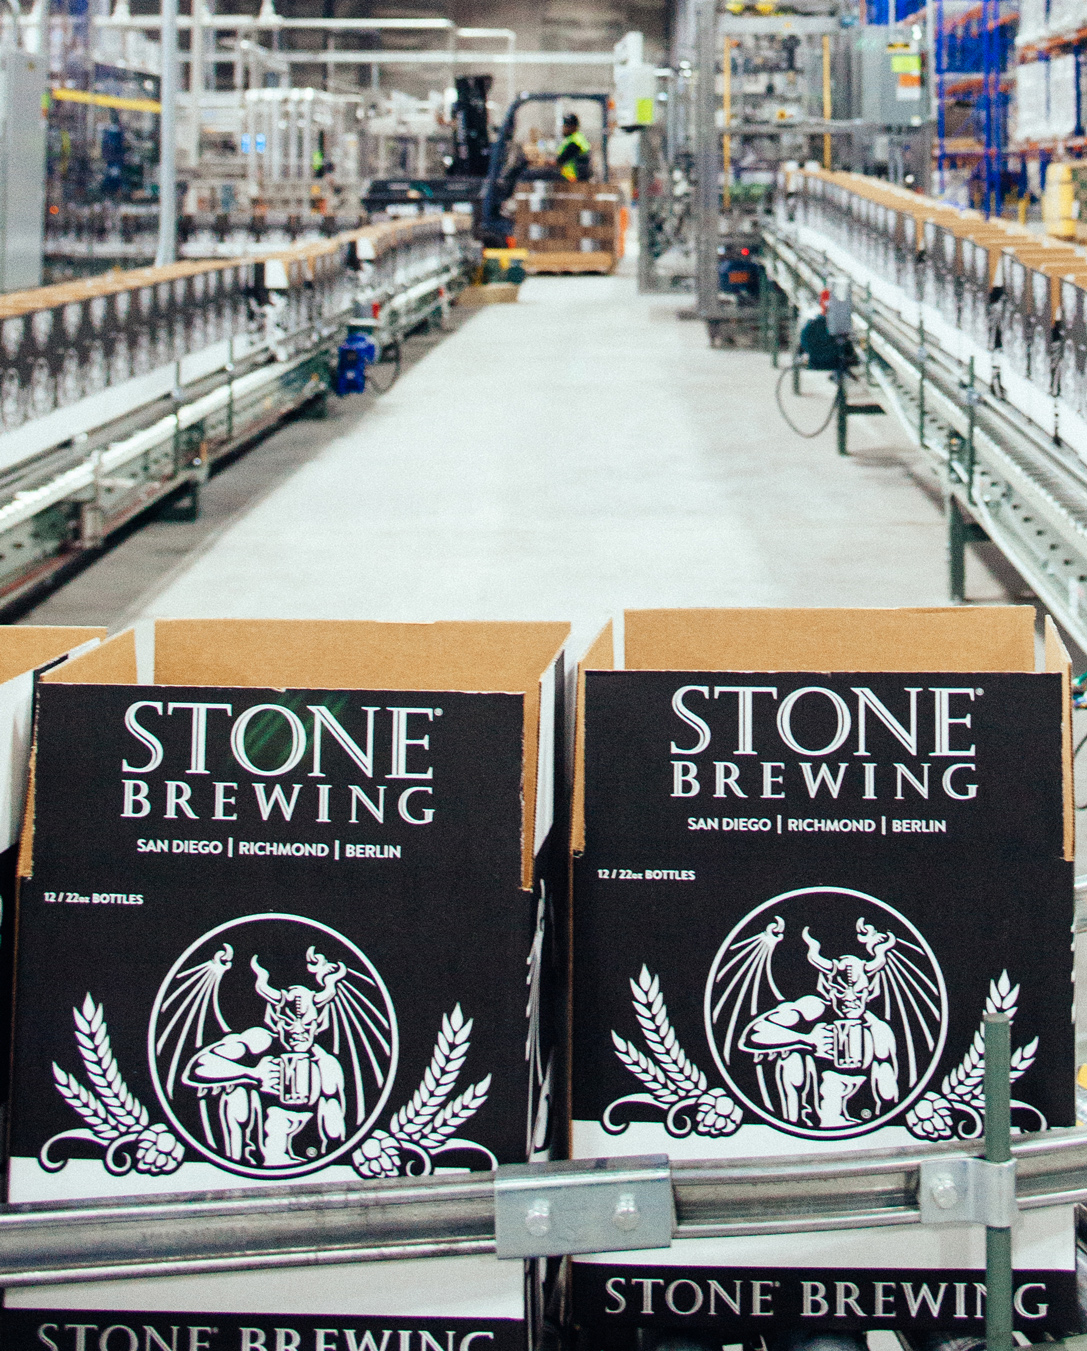 Stone Brewing in Richmond, a Food and Beverage Industrial Client of ITAC